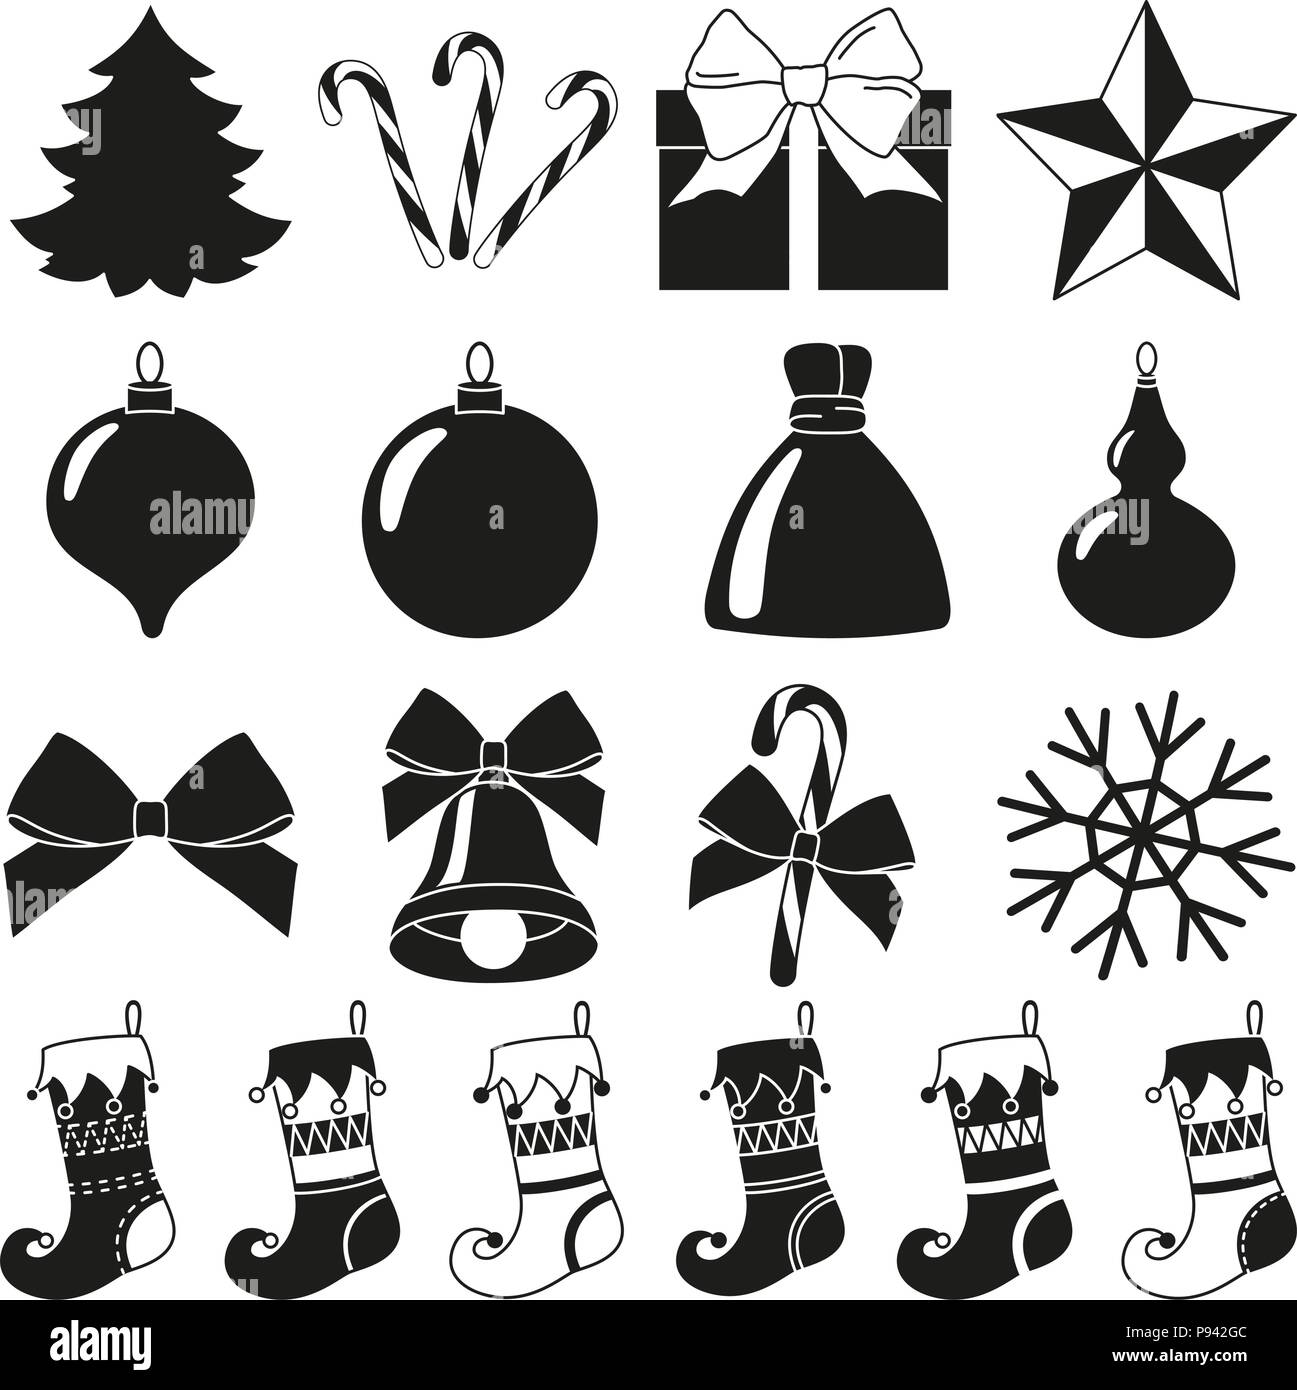 black white 18 christmas elements silhouette set new year holiday decorations vector illustration for icon logo sticker patch label badge embl